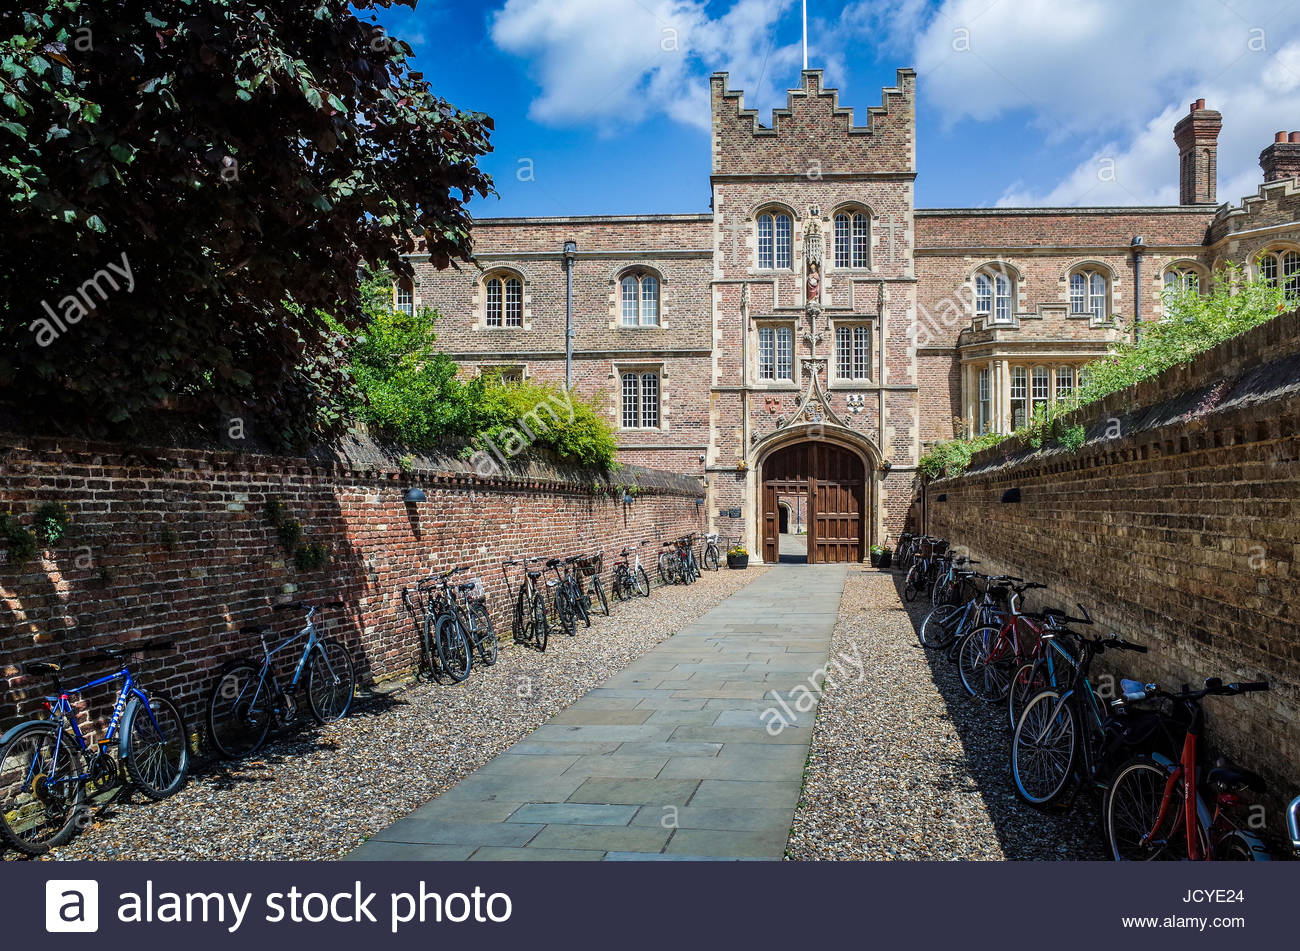 The entrance to Jesus College Cambridge, part of the University of Cambridge. The entrance is known as the Chimney. - Stock Image